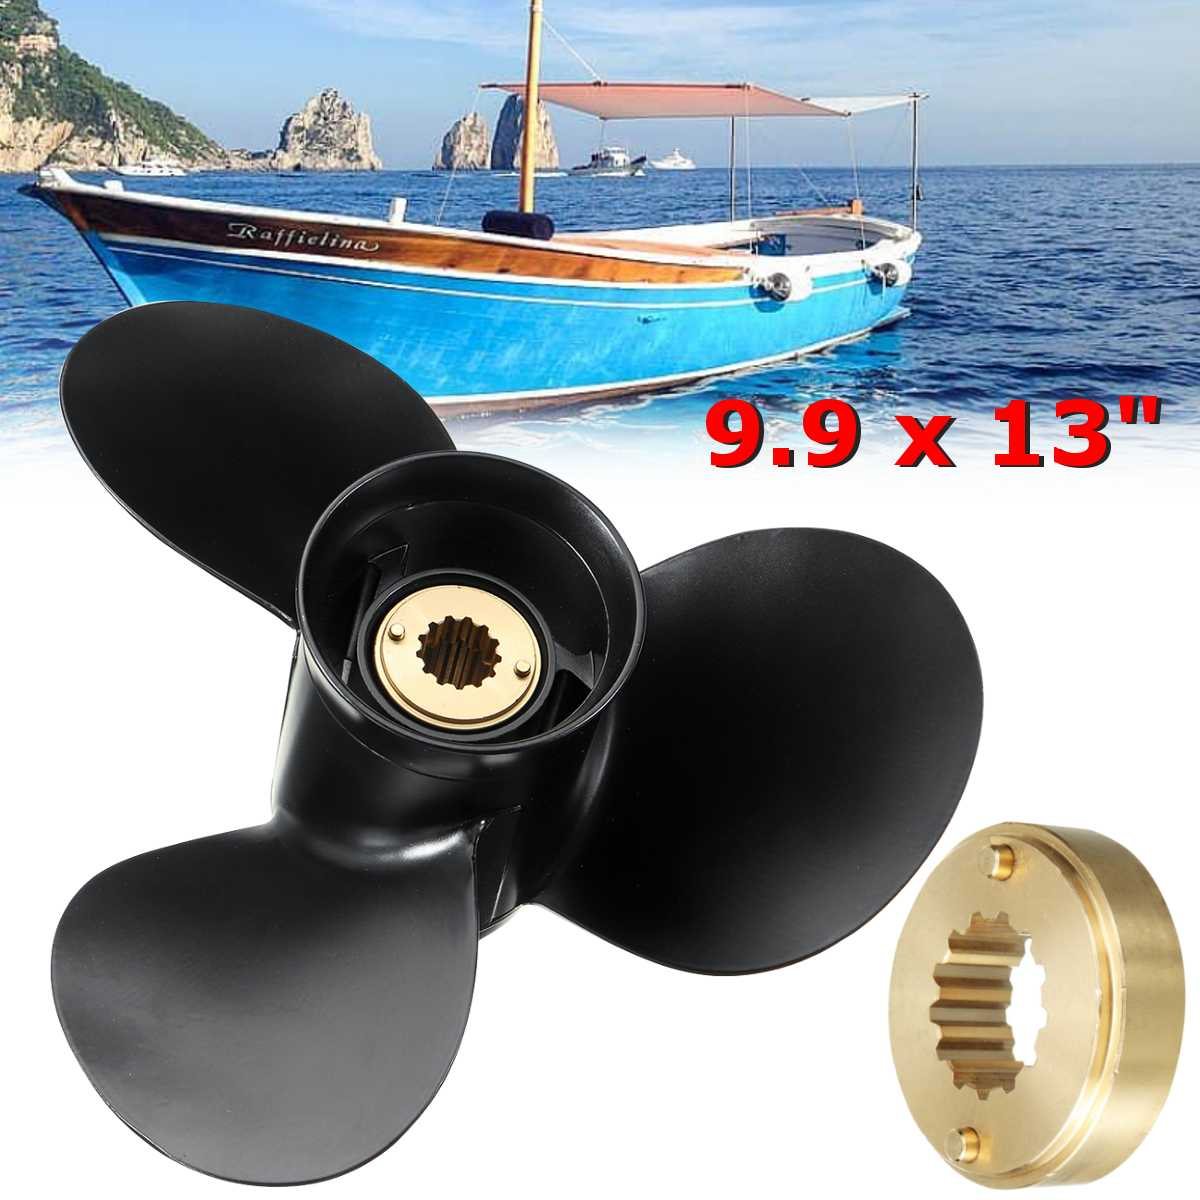 48 19640A40 Aluminum Alloy 9 9 x 13 Mariner Boat Outboard Propeller For Mercury Engine 25